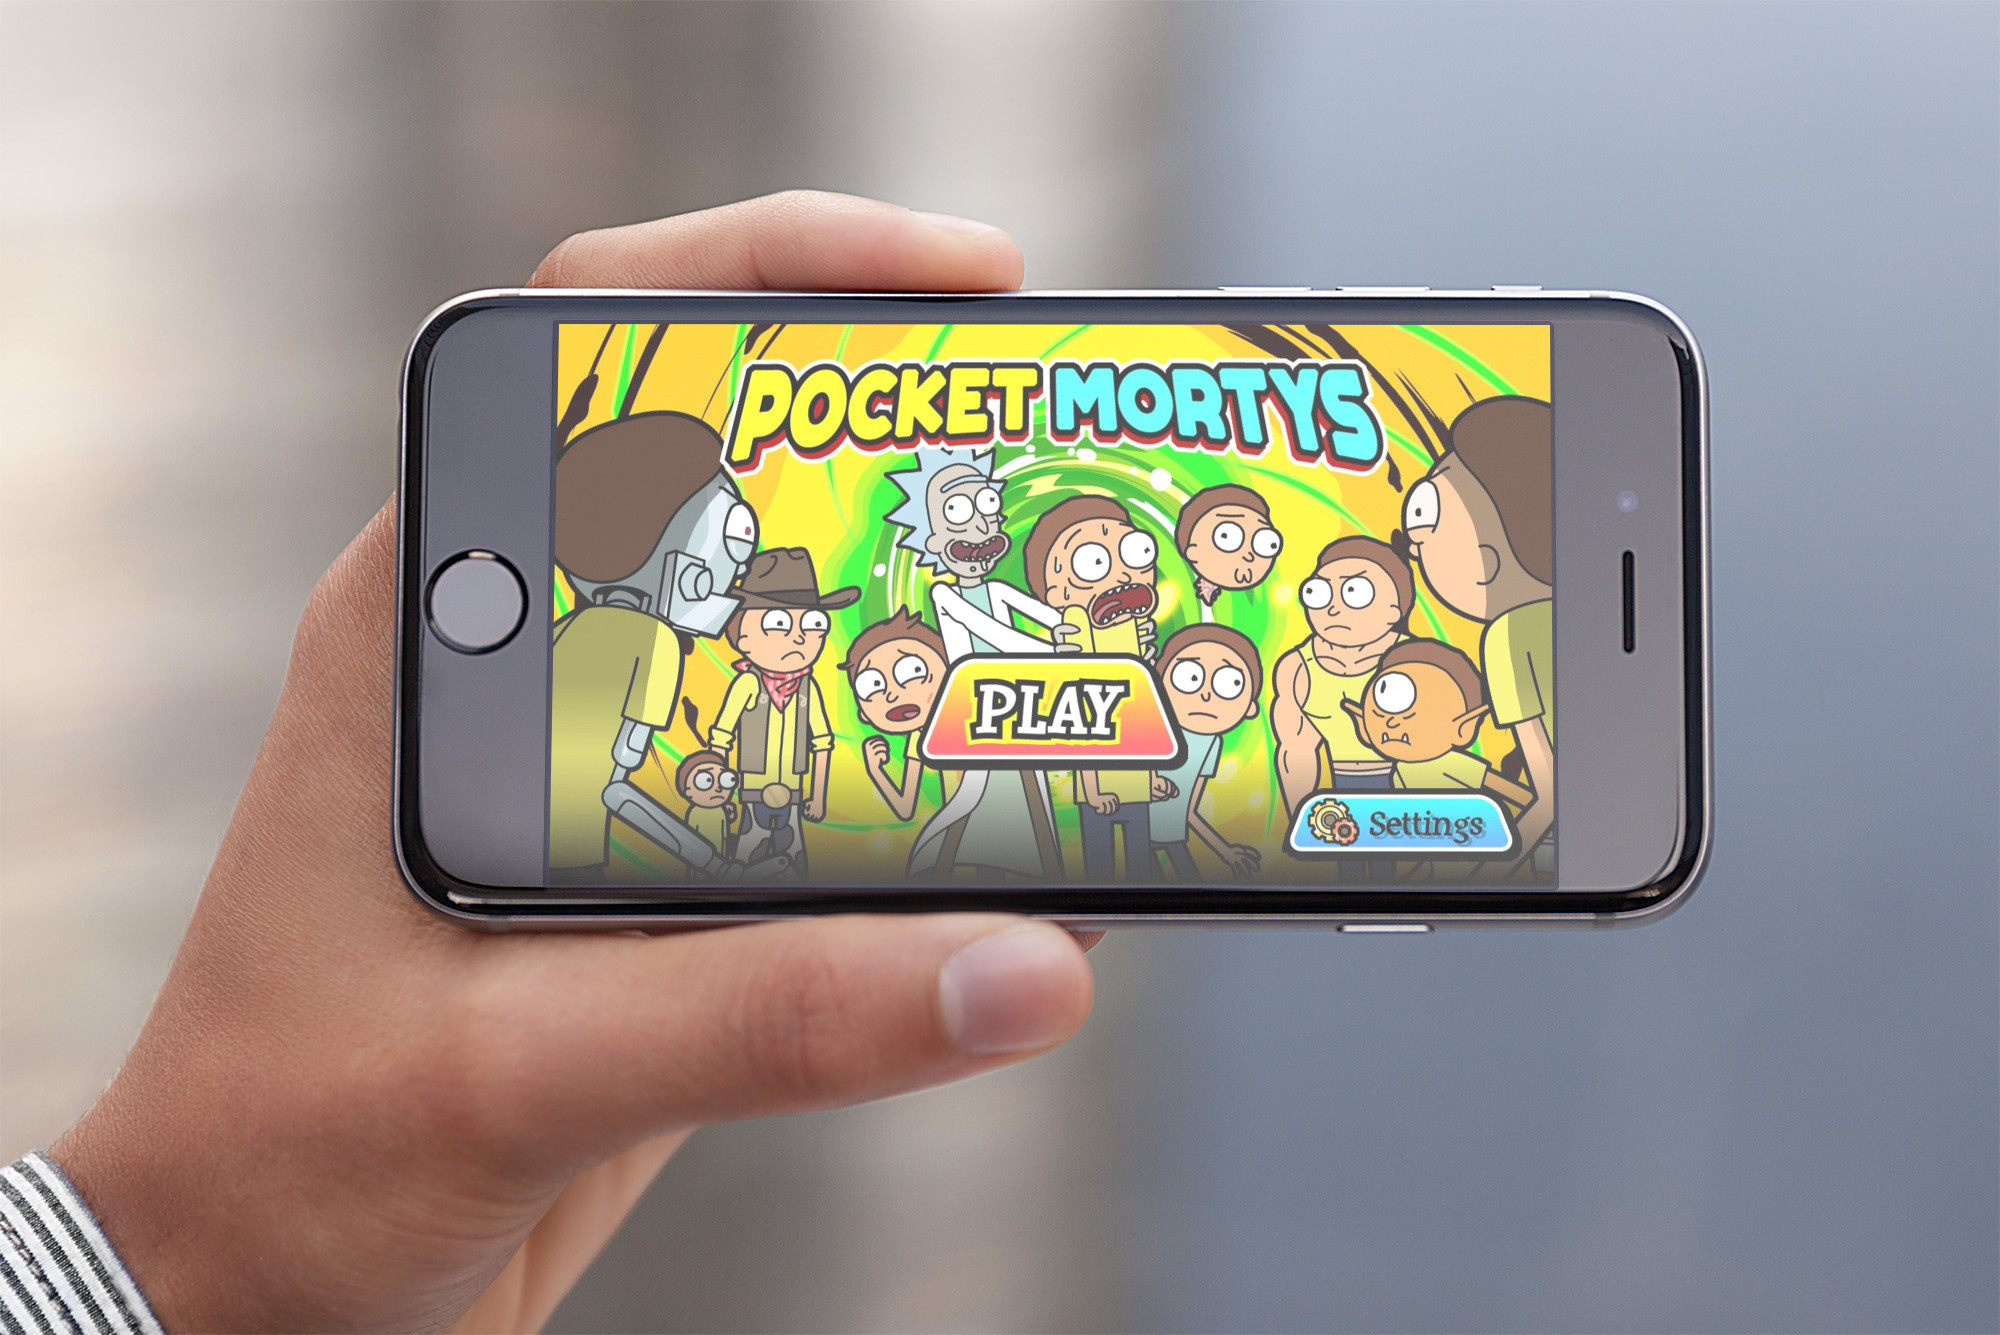 Battle for respect in Adult Swim's Pocket Mortys, now on iOS